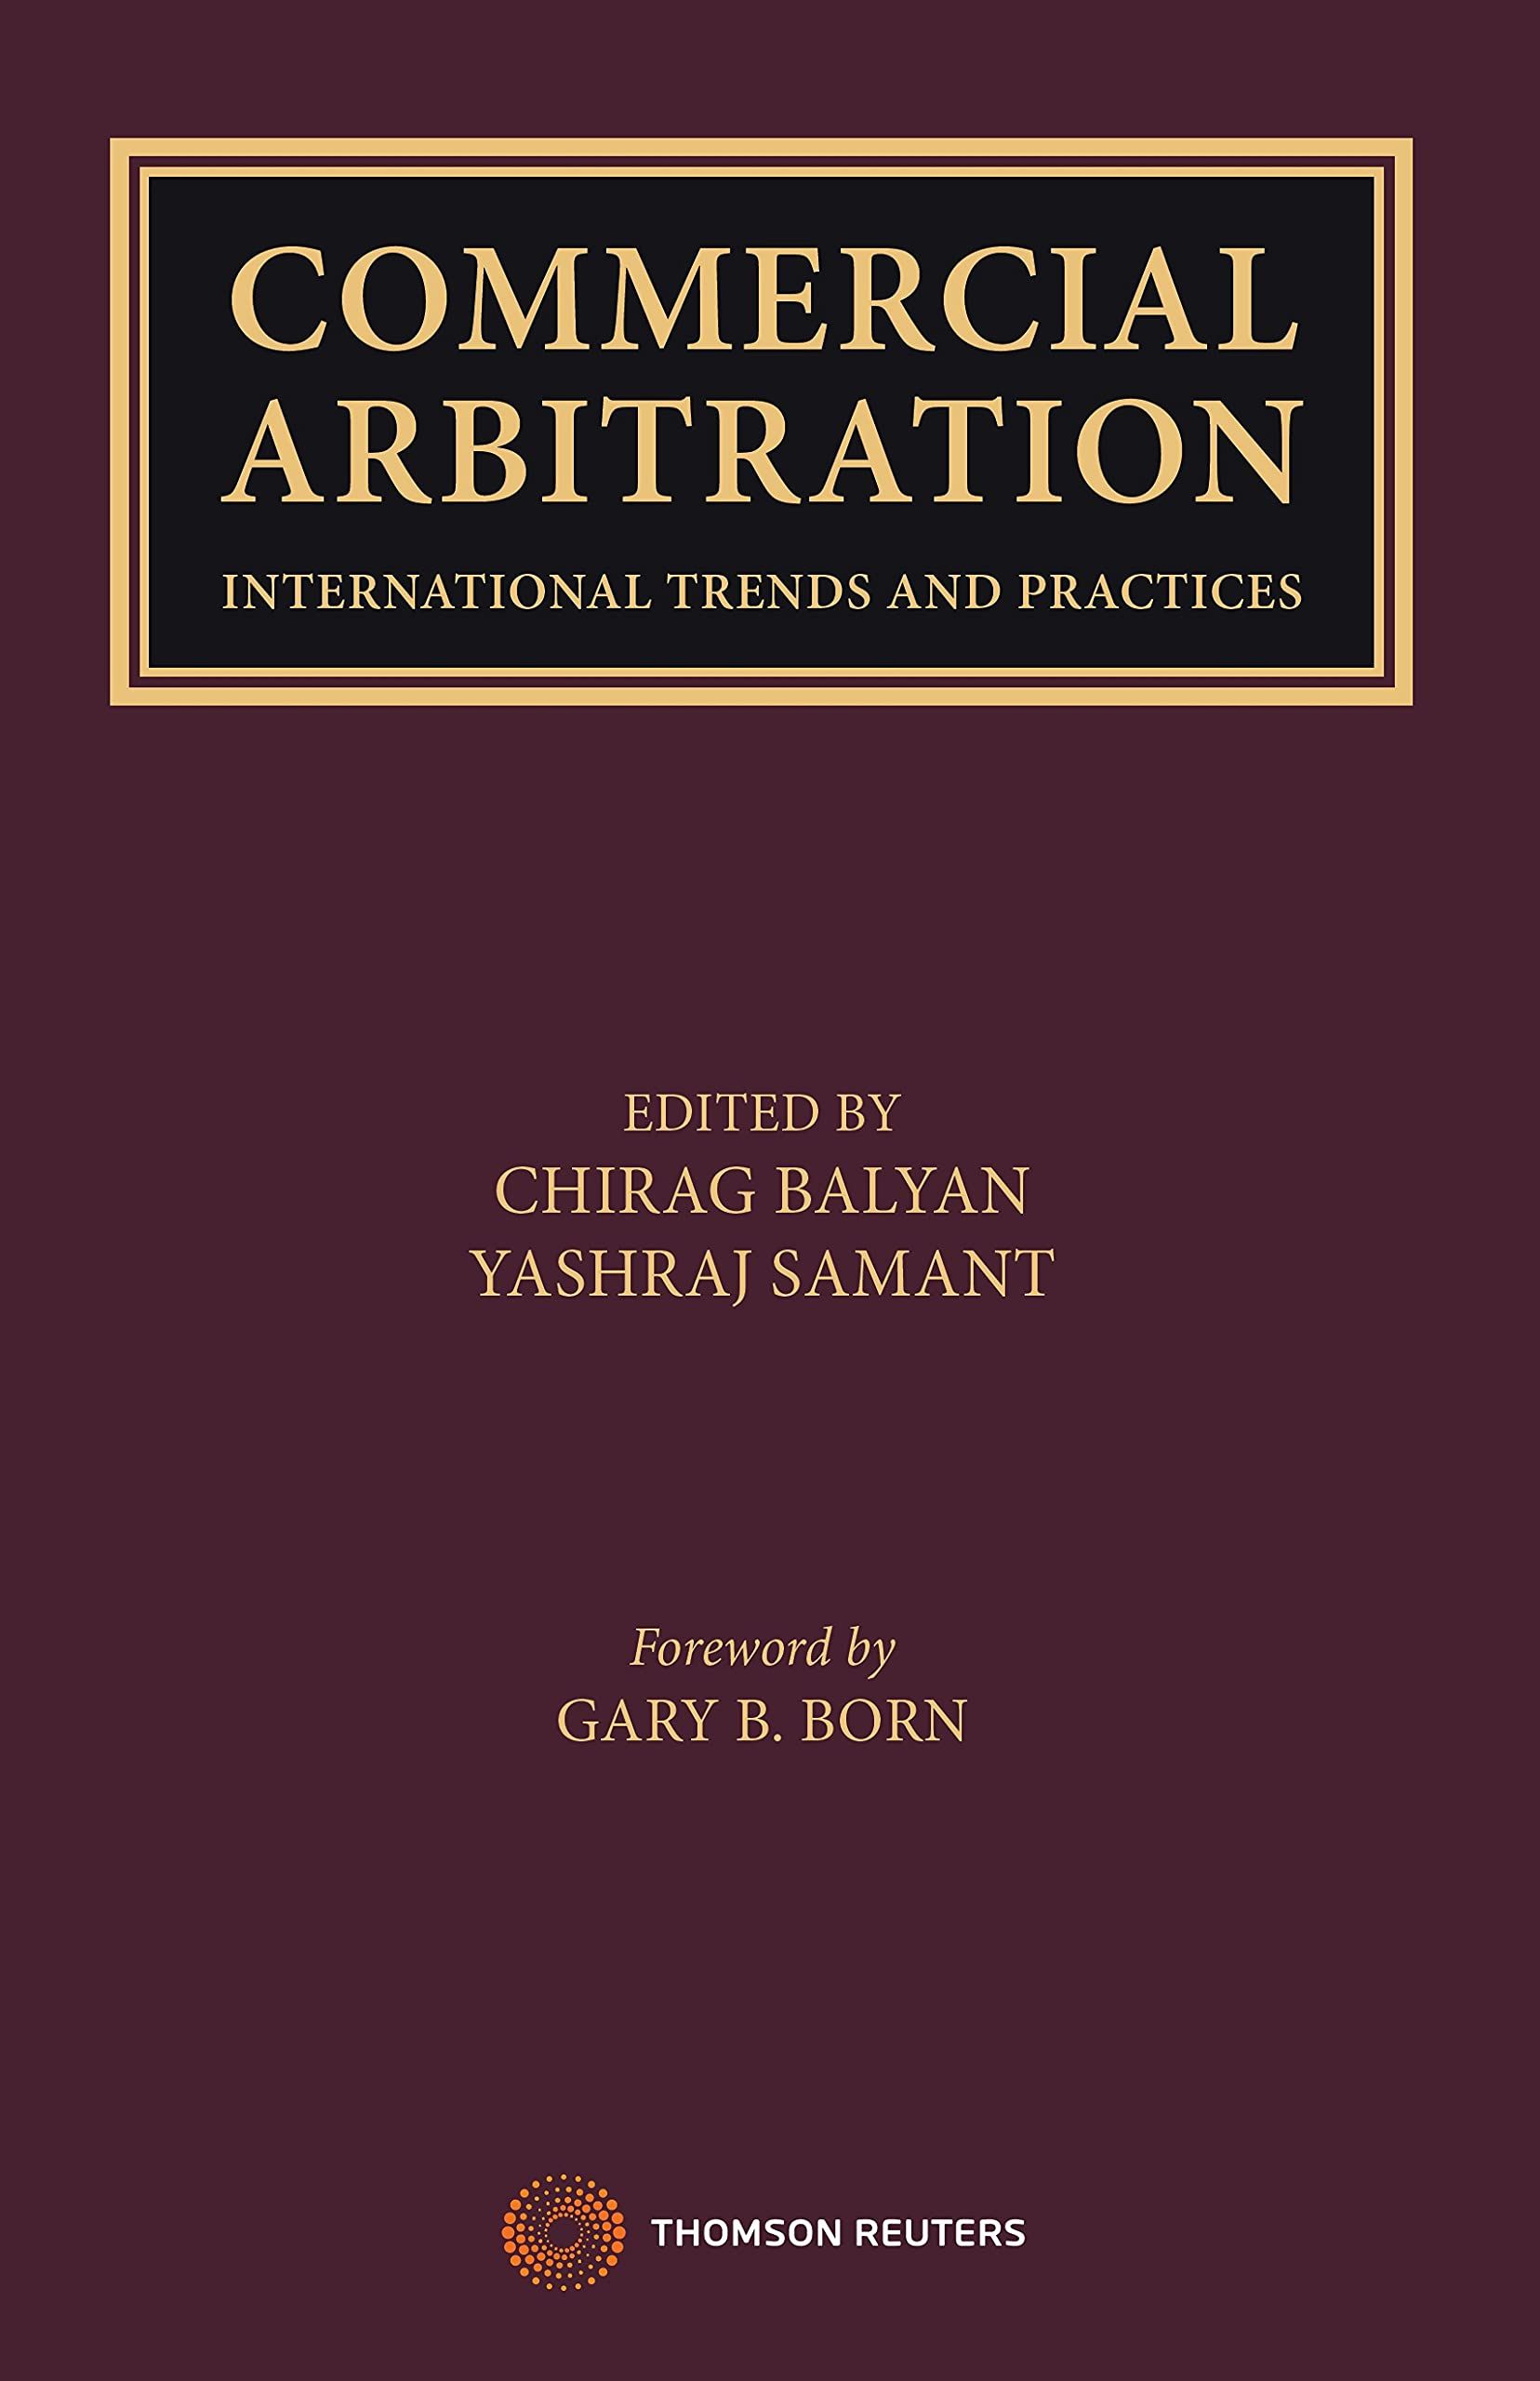 Commercial Arbitration International Trends and Practices